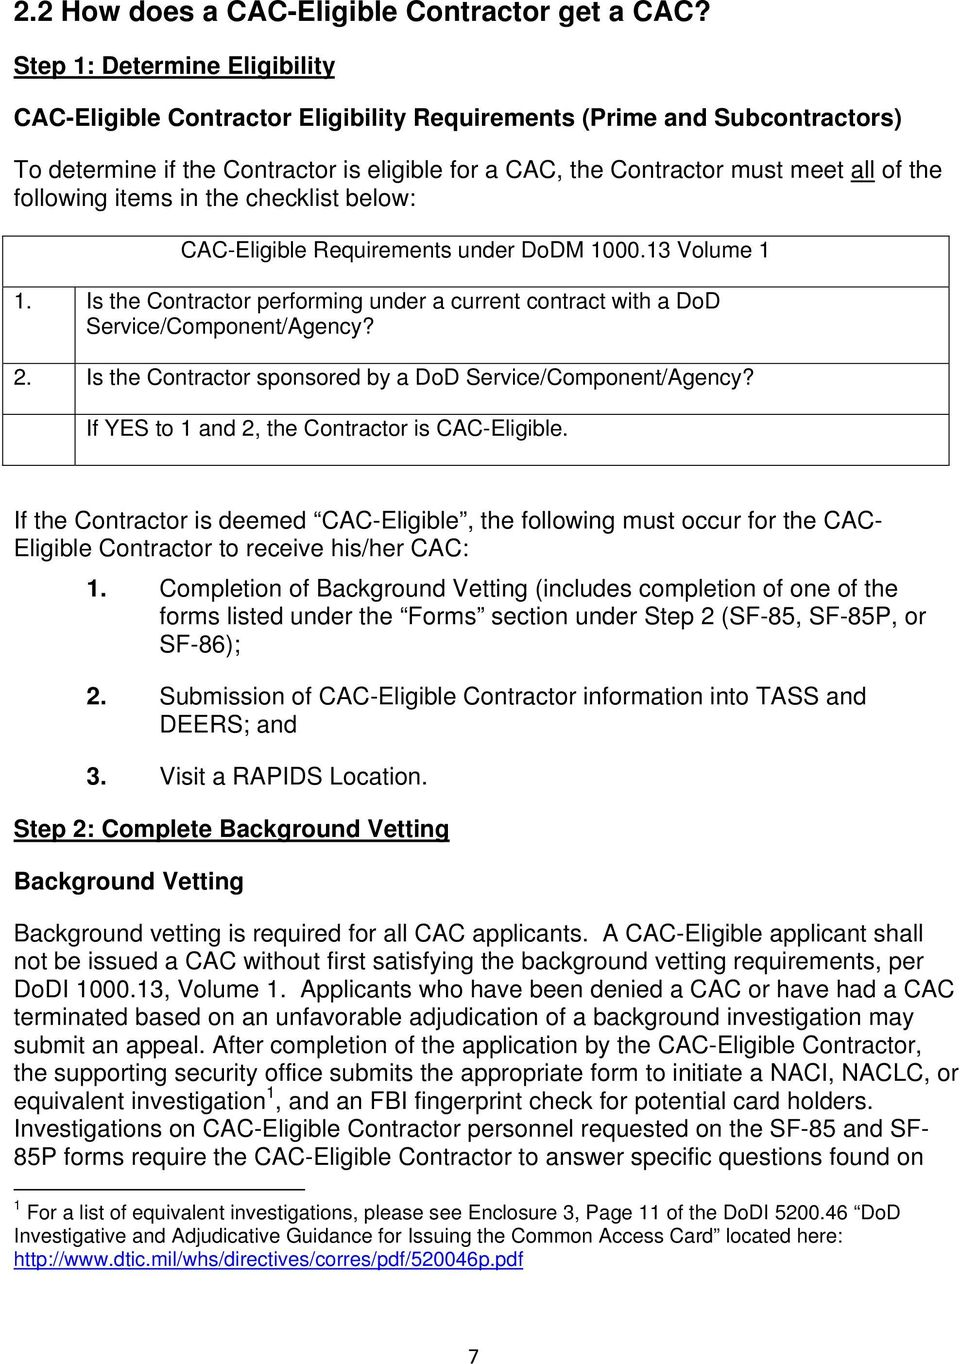 following items in the checklist below: CAC-Eligible Requirements under DoDM 1000.13 Volume 1 1. Is the Contractor performing under a current contract with a DoD Service/Component/Agency? 2.